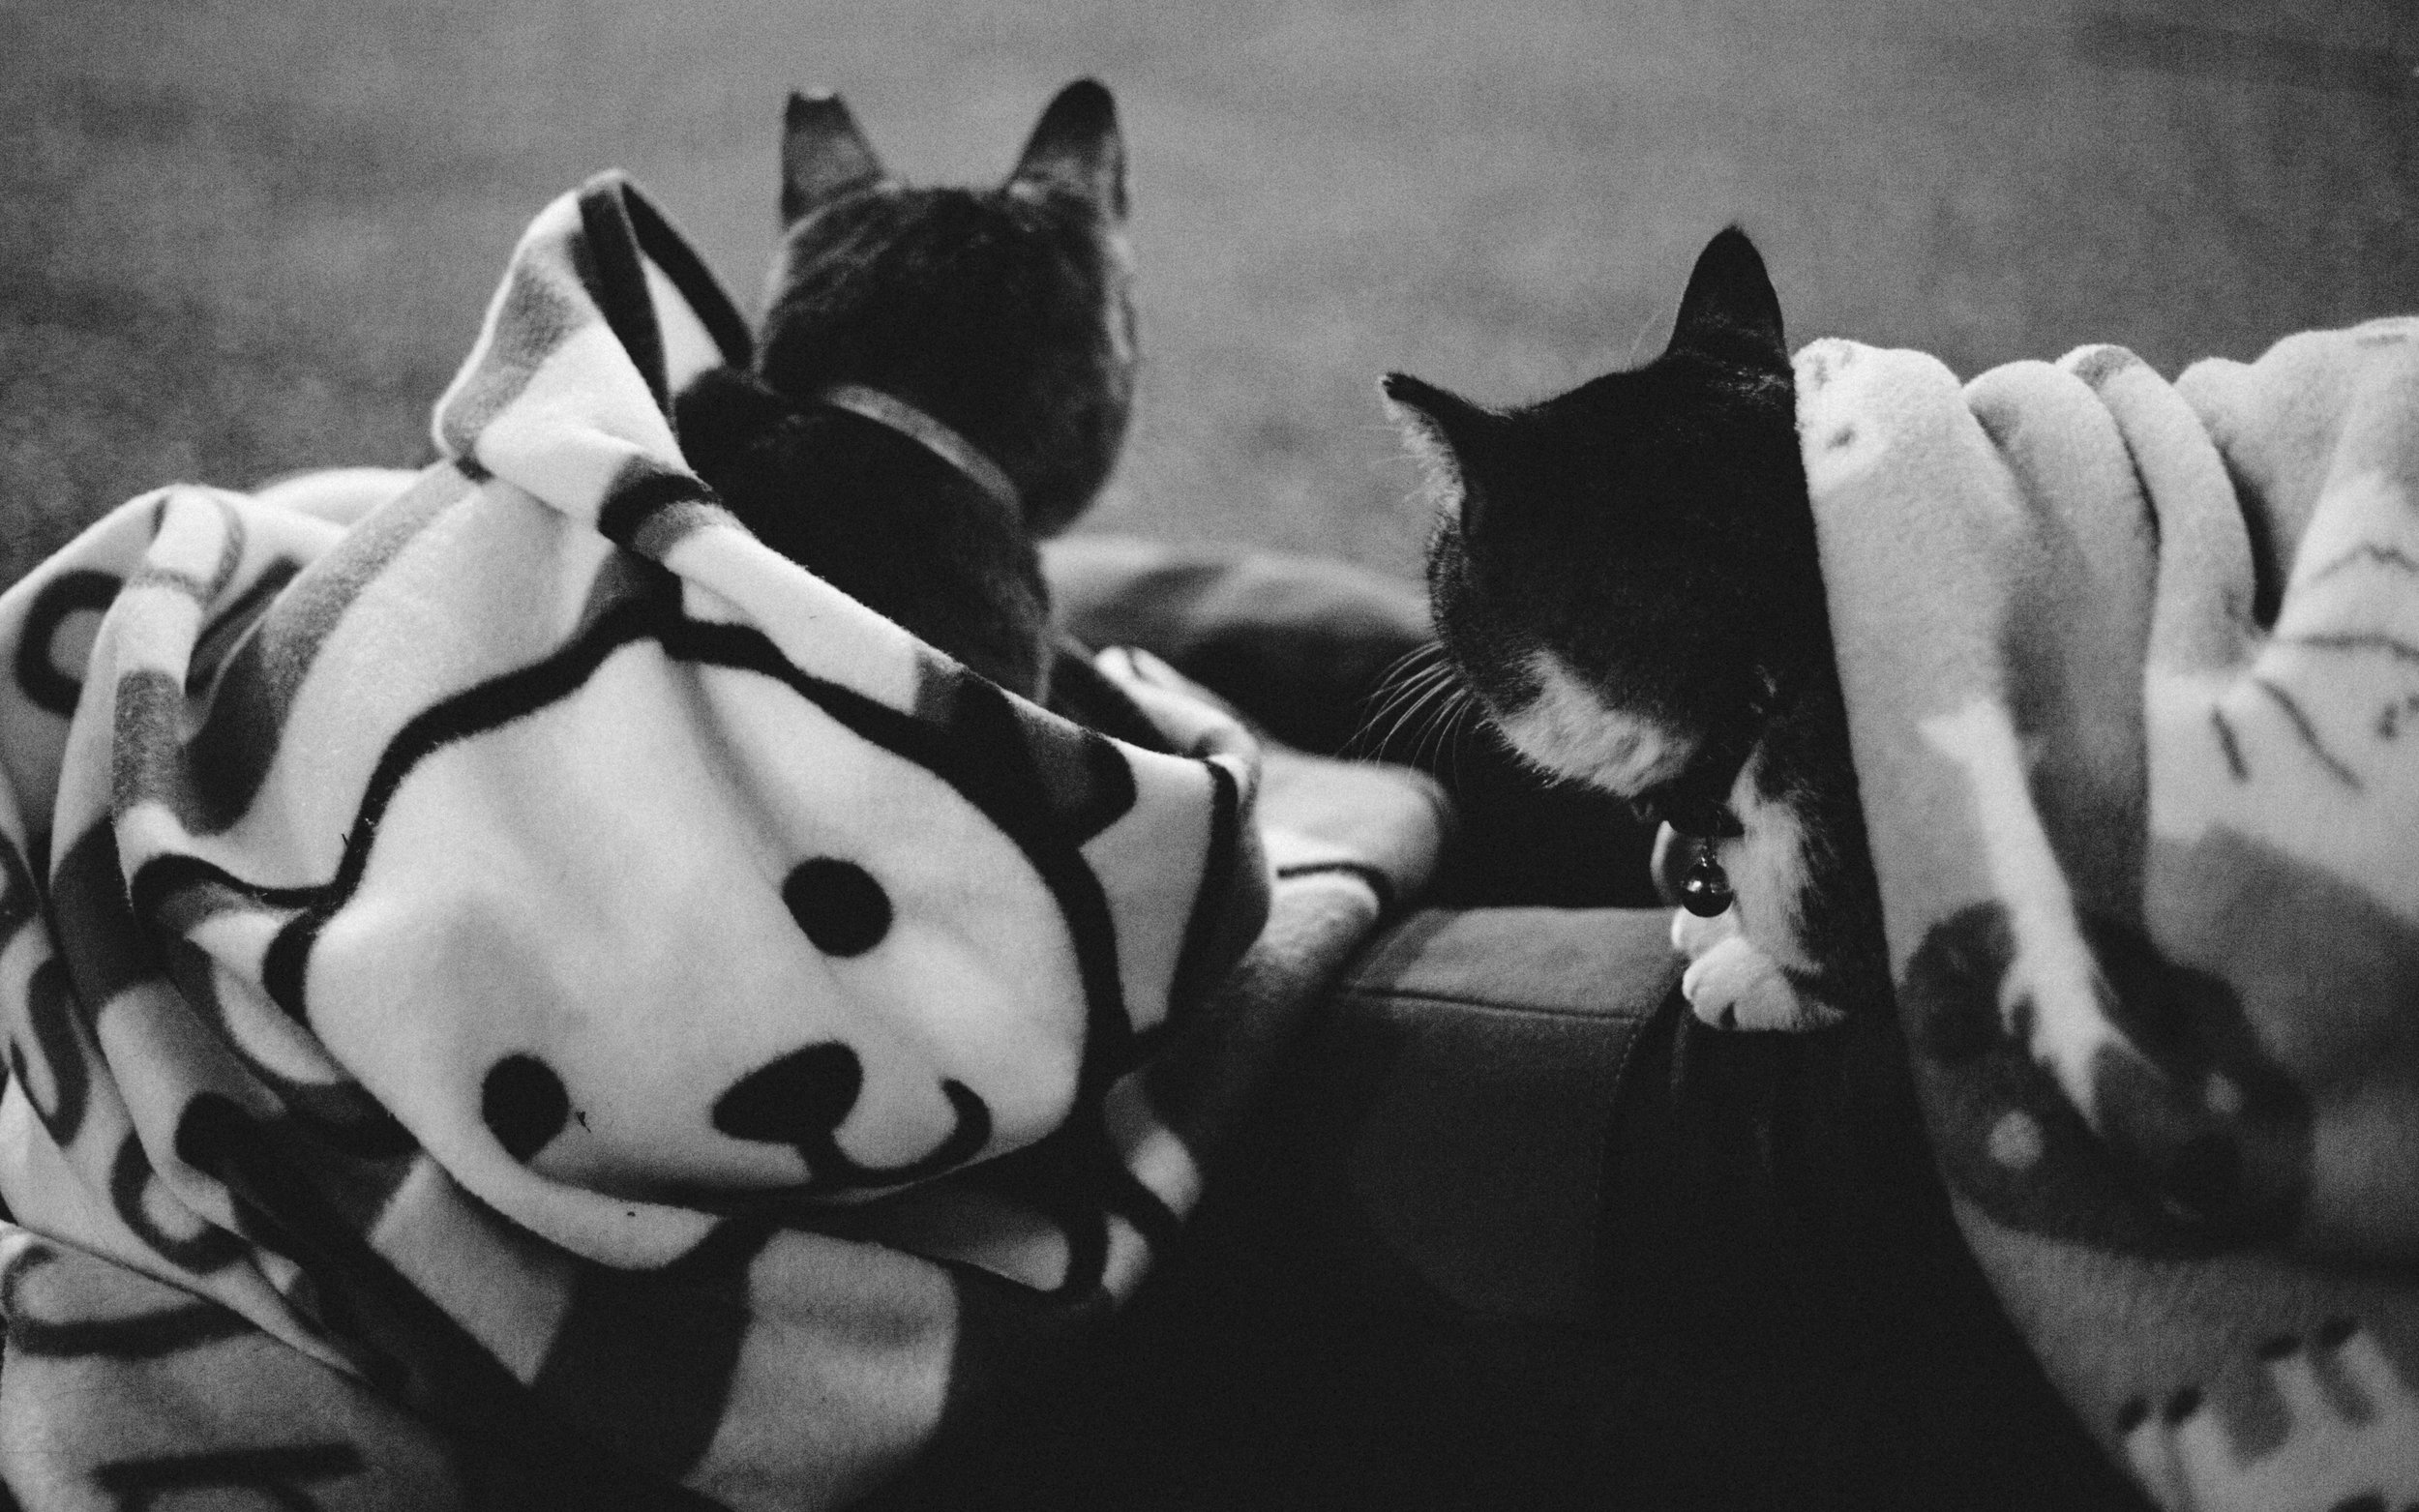 As winter comes, the cats find warmth in snuggling up to humans, particularly their caretakers.